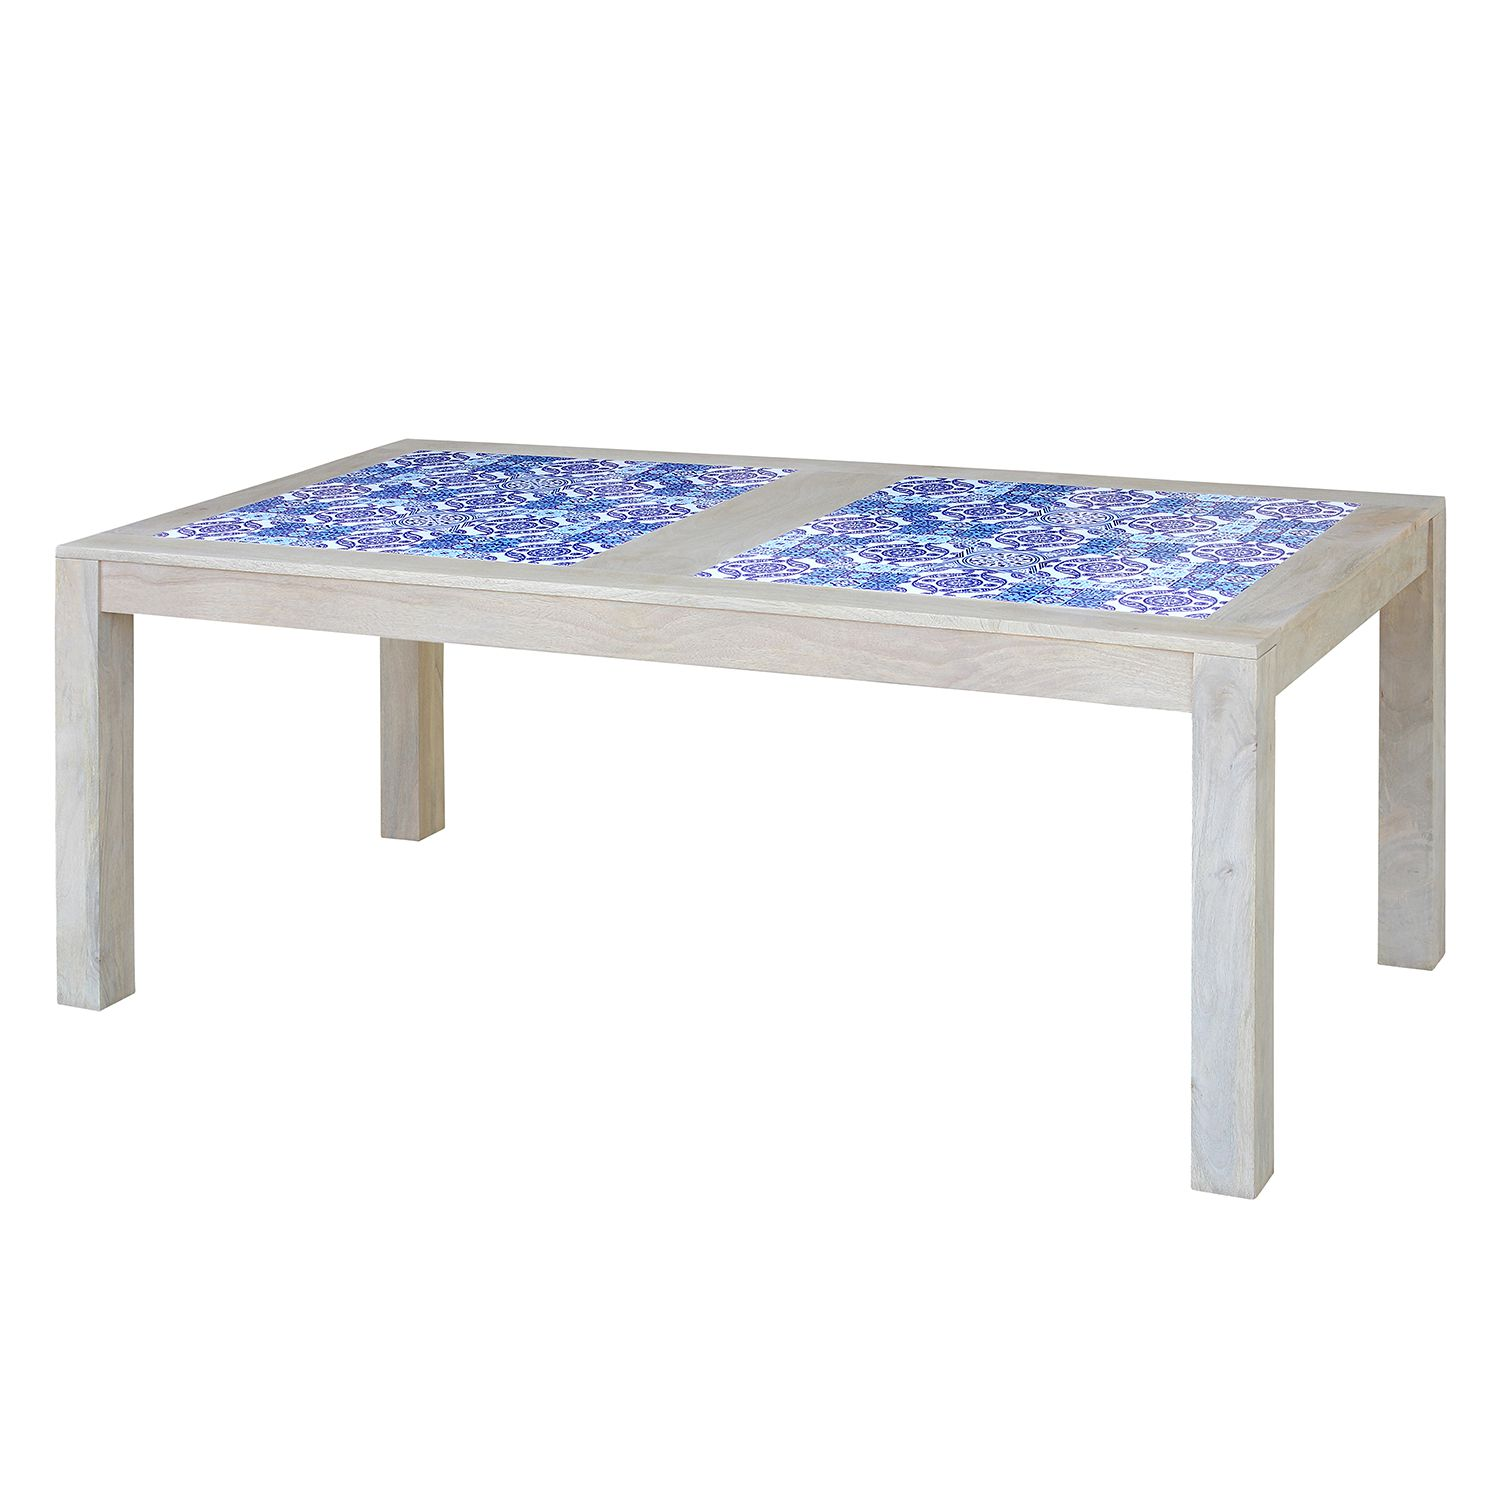 Table à manger Ibiza - Manguier massif / Céramique - Manguier / Bleu - 160 x 95 cm, ars manufacti